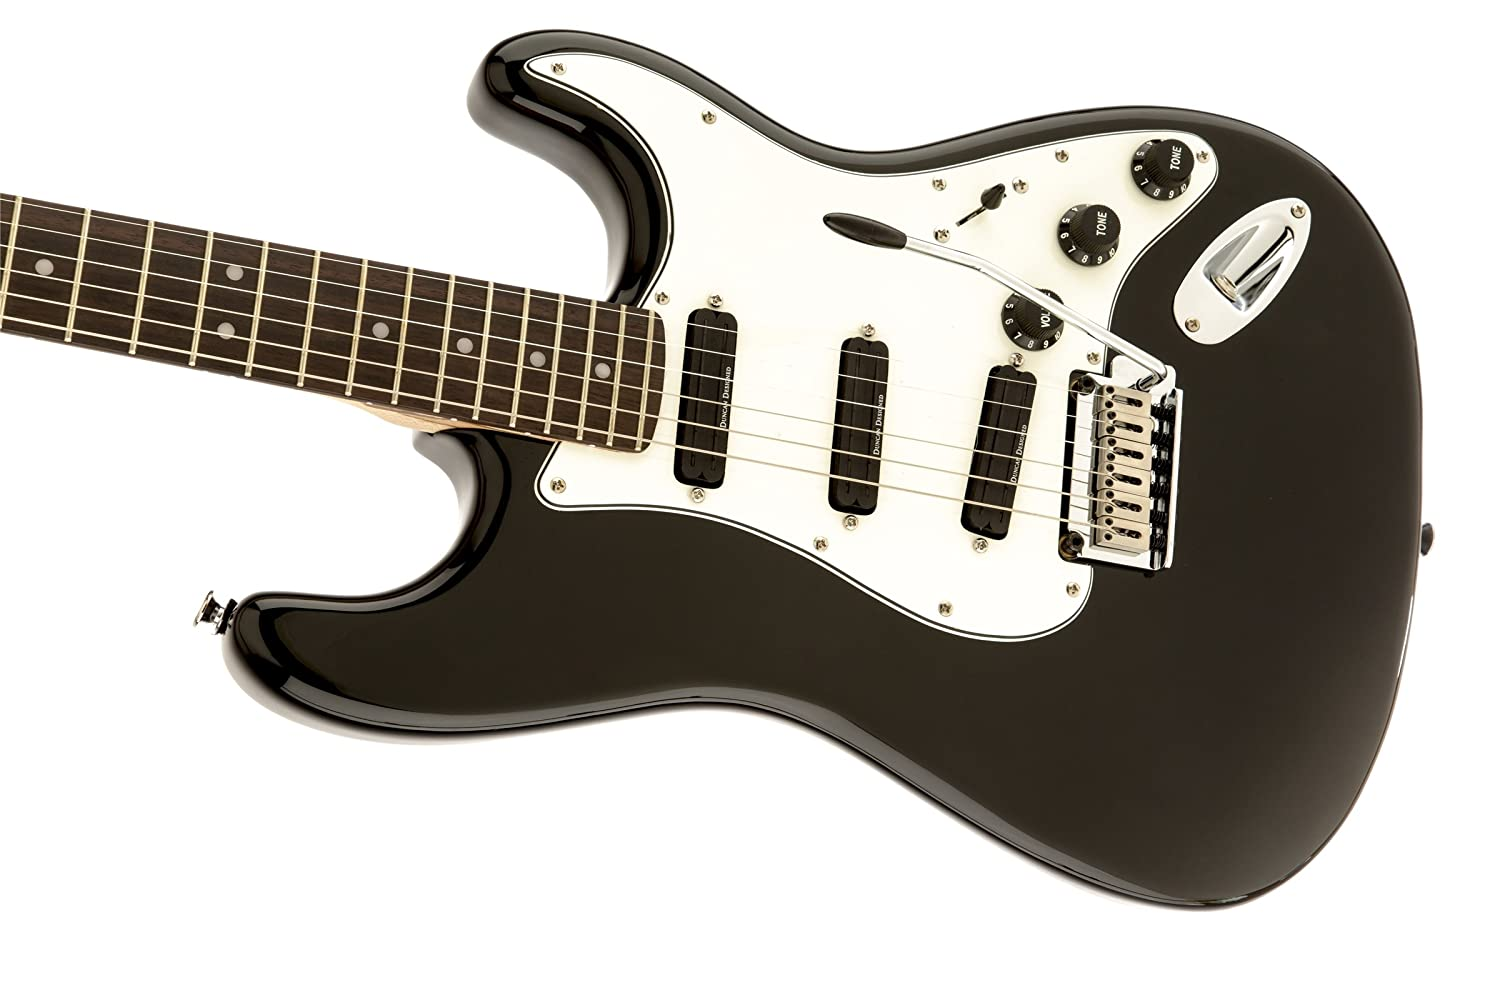 Squier Deluxe Hot Rails Stratocaster Black Musical Fender Mexican Strat Wiring Diagram Instruments